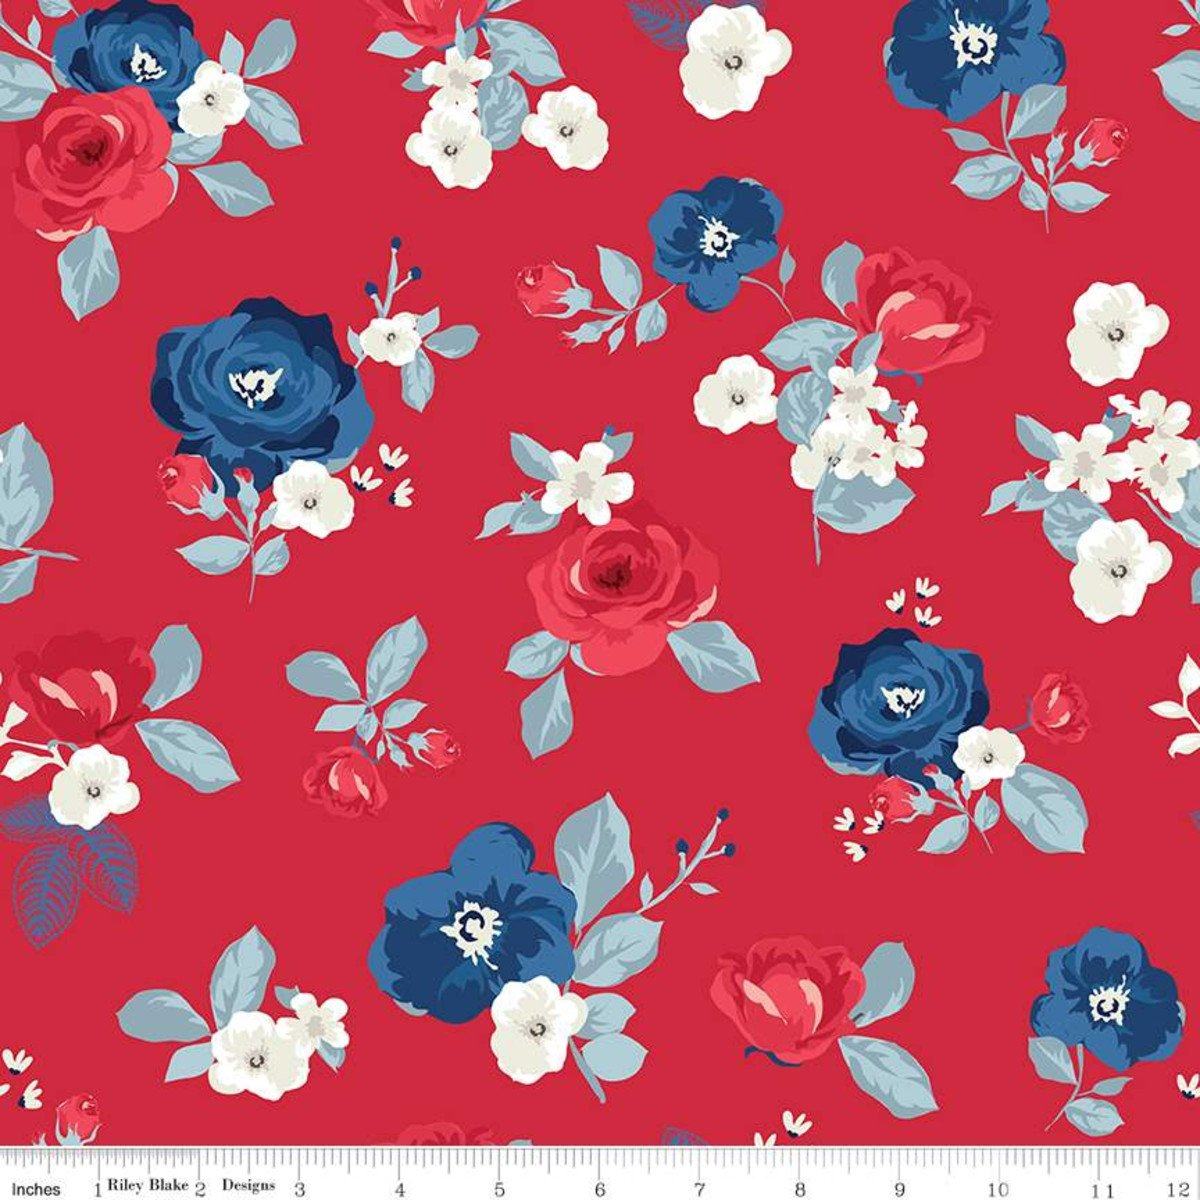 Land of Liberty C10560 Roses Red